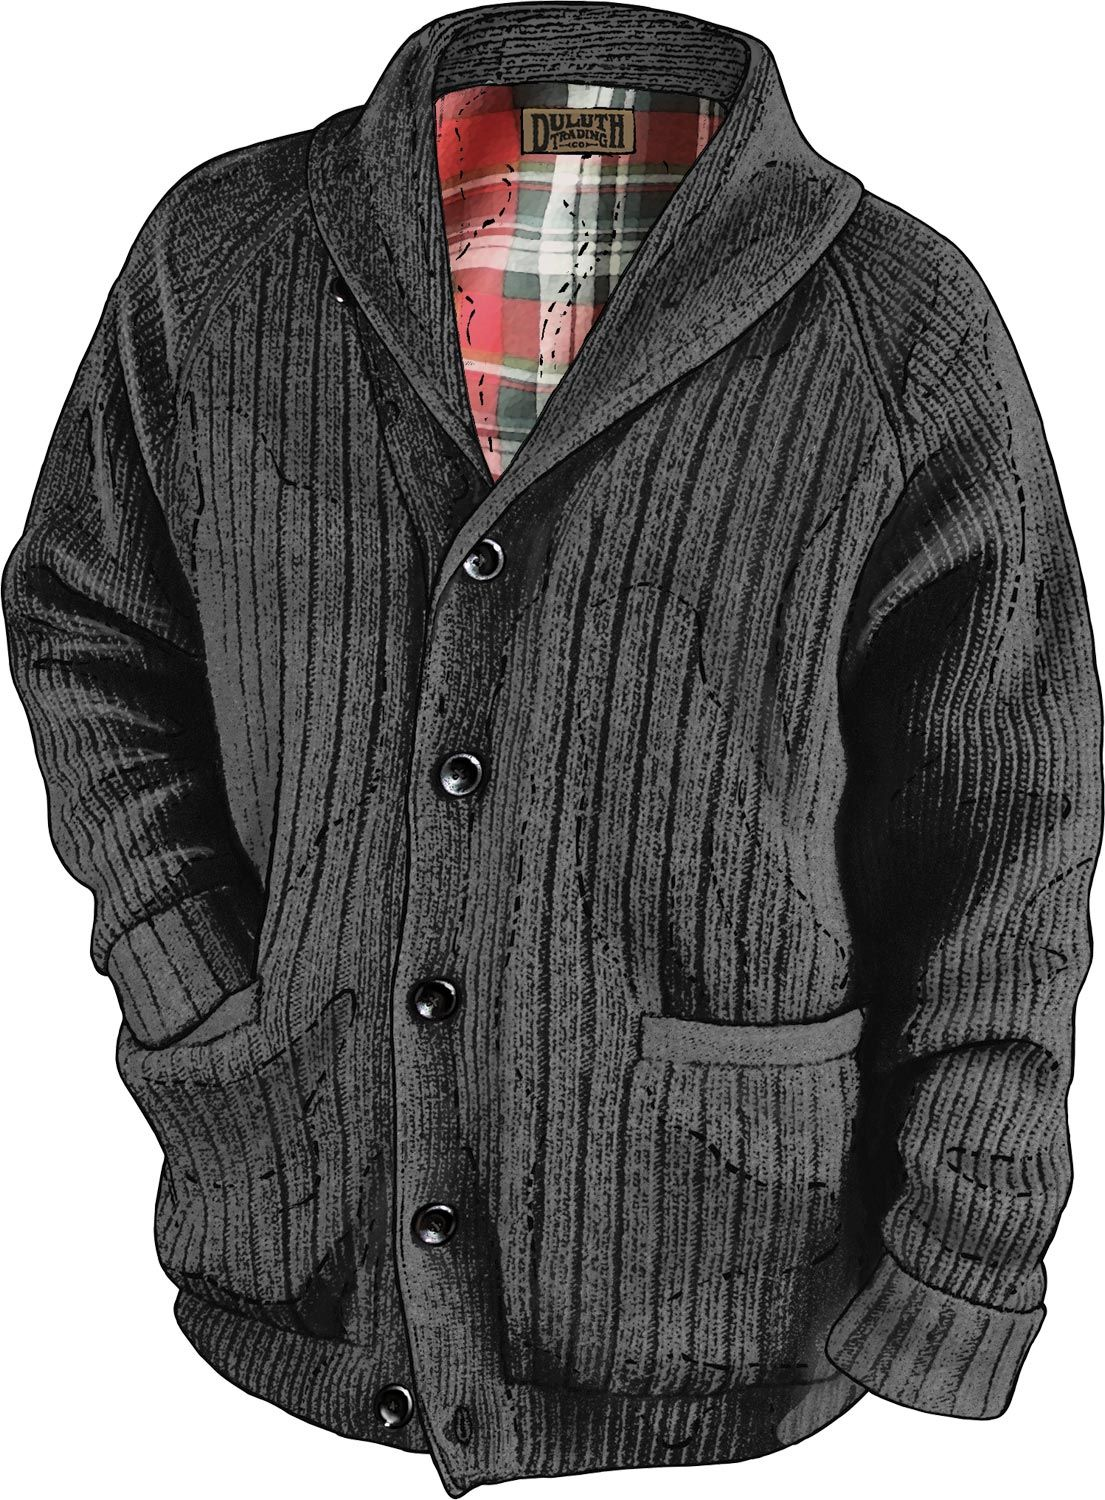 The Men's Woolpaca Shawl Collar Cardigan at Duluth Trading Company is  incredibly beefy